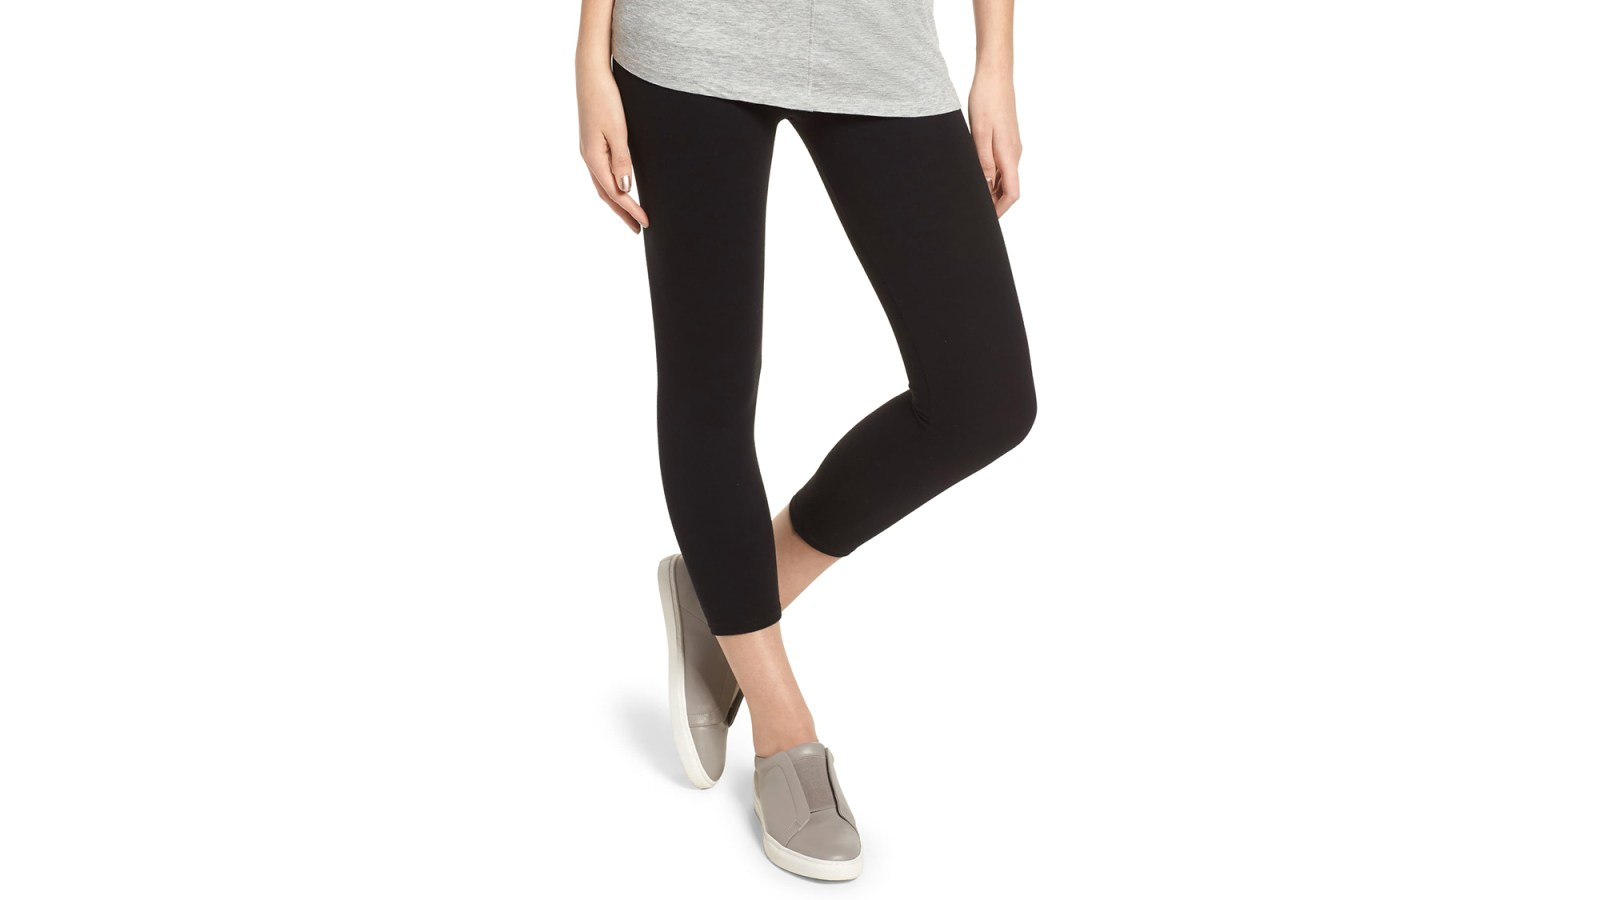 736132698fb29c These Nordstrom Leggings Are a Staple You'll Wear Every Day